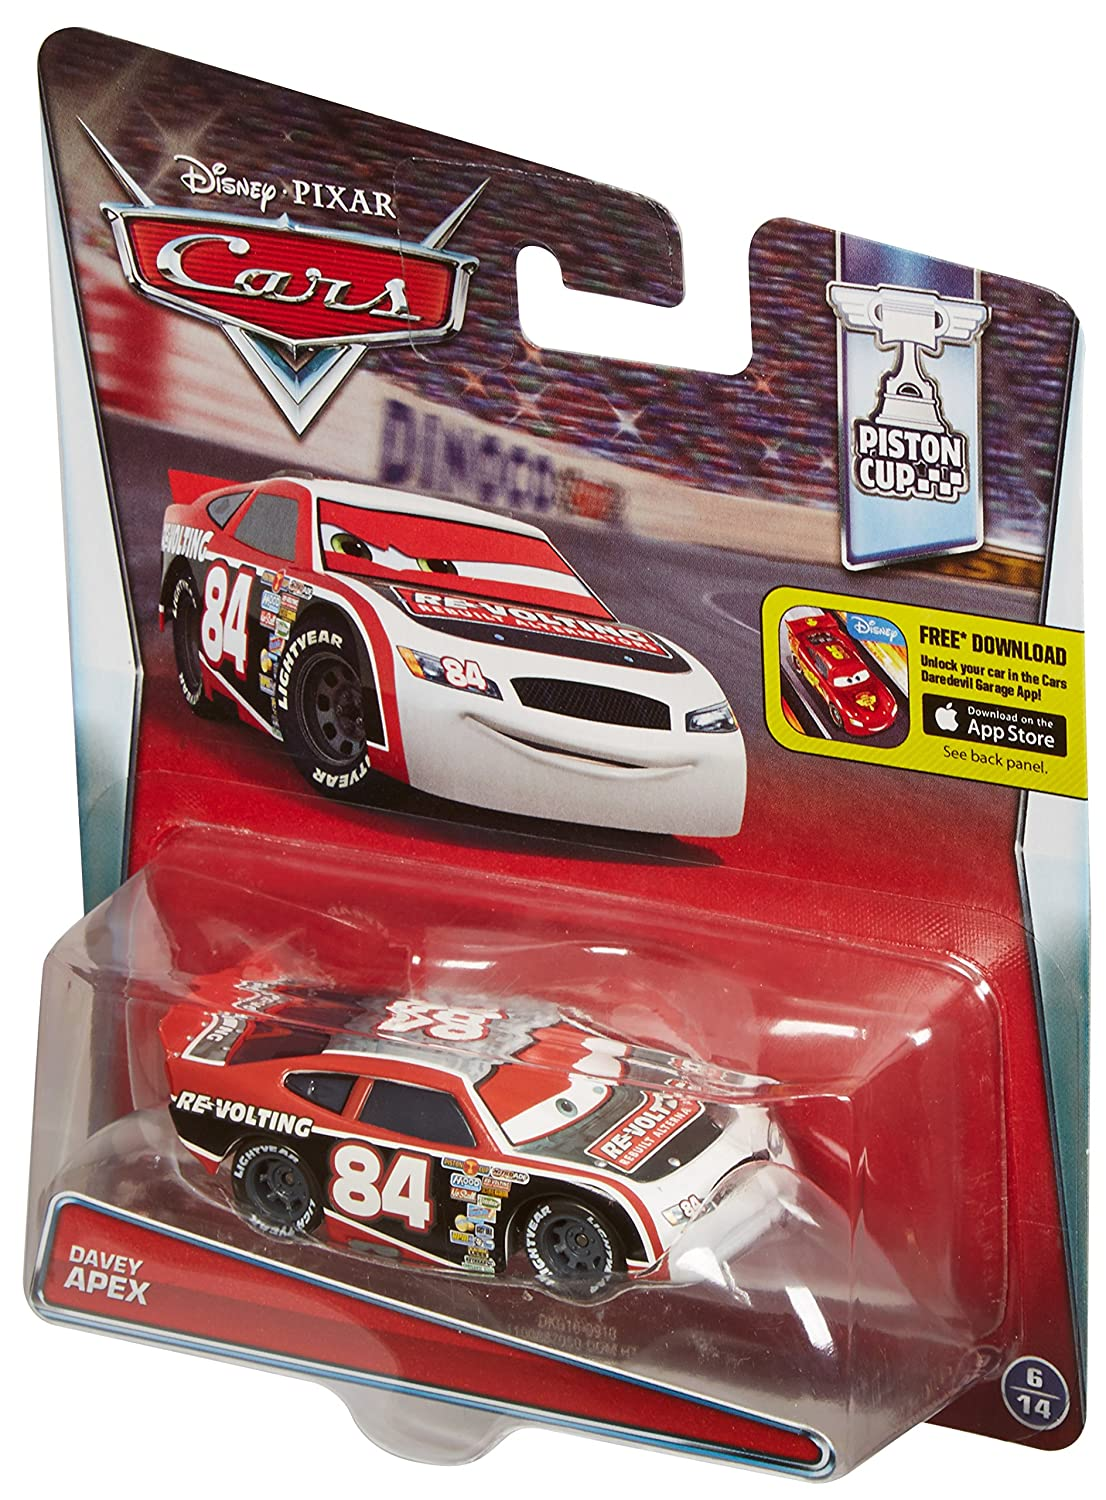 Disney/Pixar Cars Diecast Revolting #84 Vehicle by Mattel: Amazon.es: Juguetes y juegos